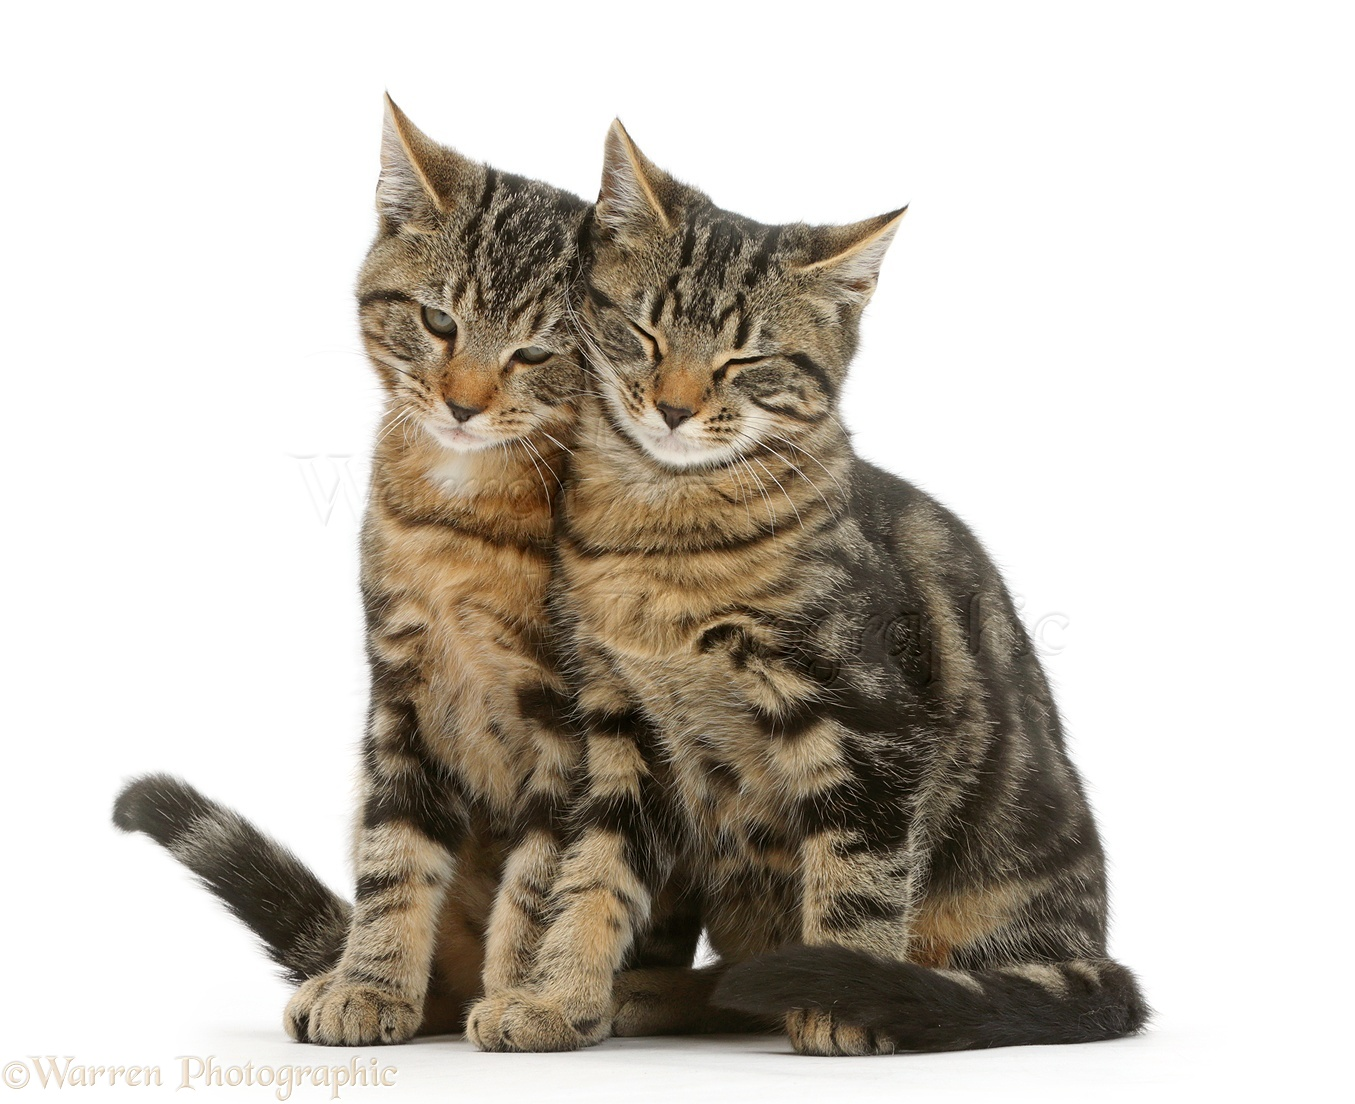 Tabby cats sitting together and rubbing photo WP41260